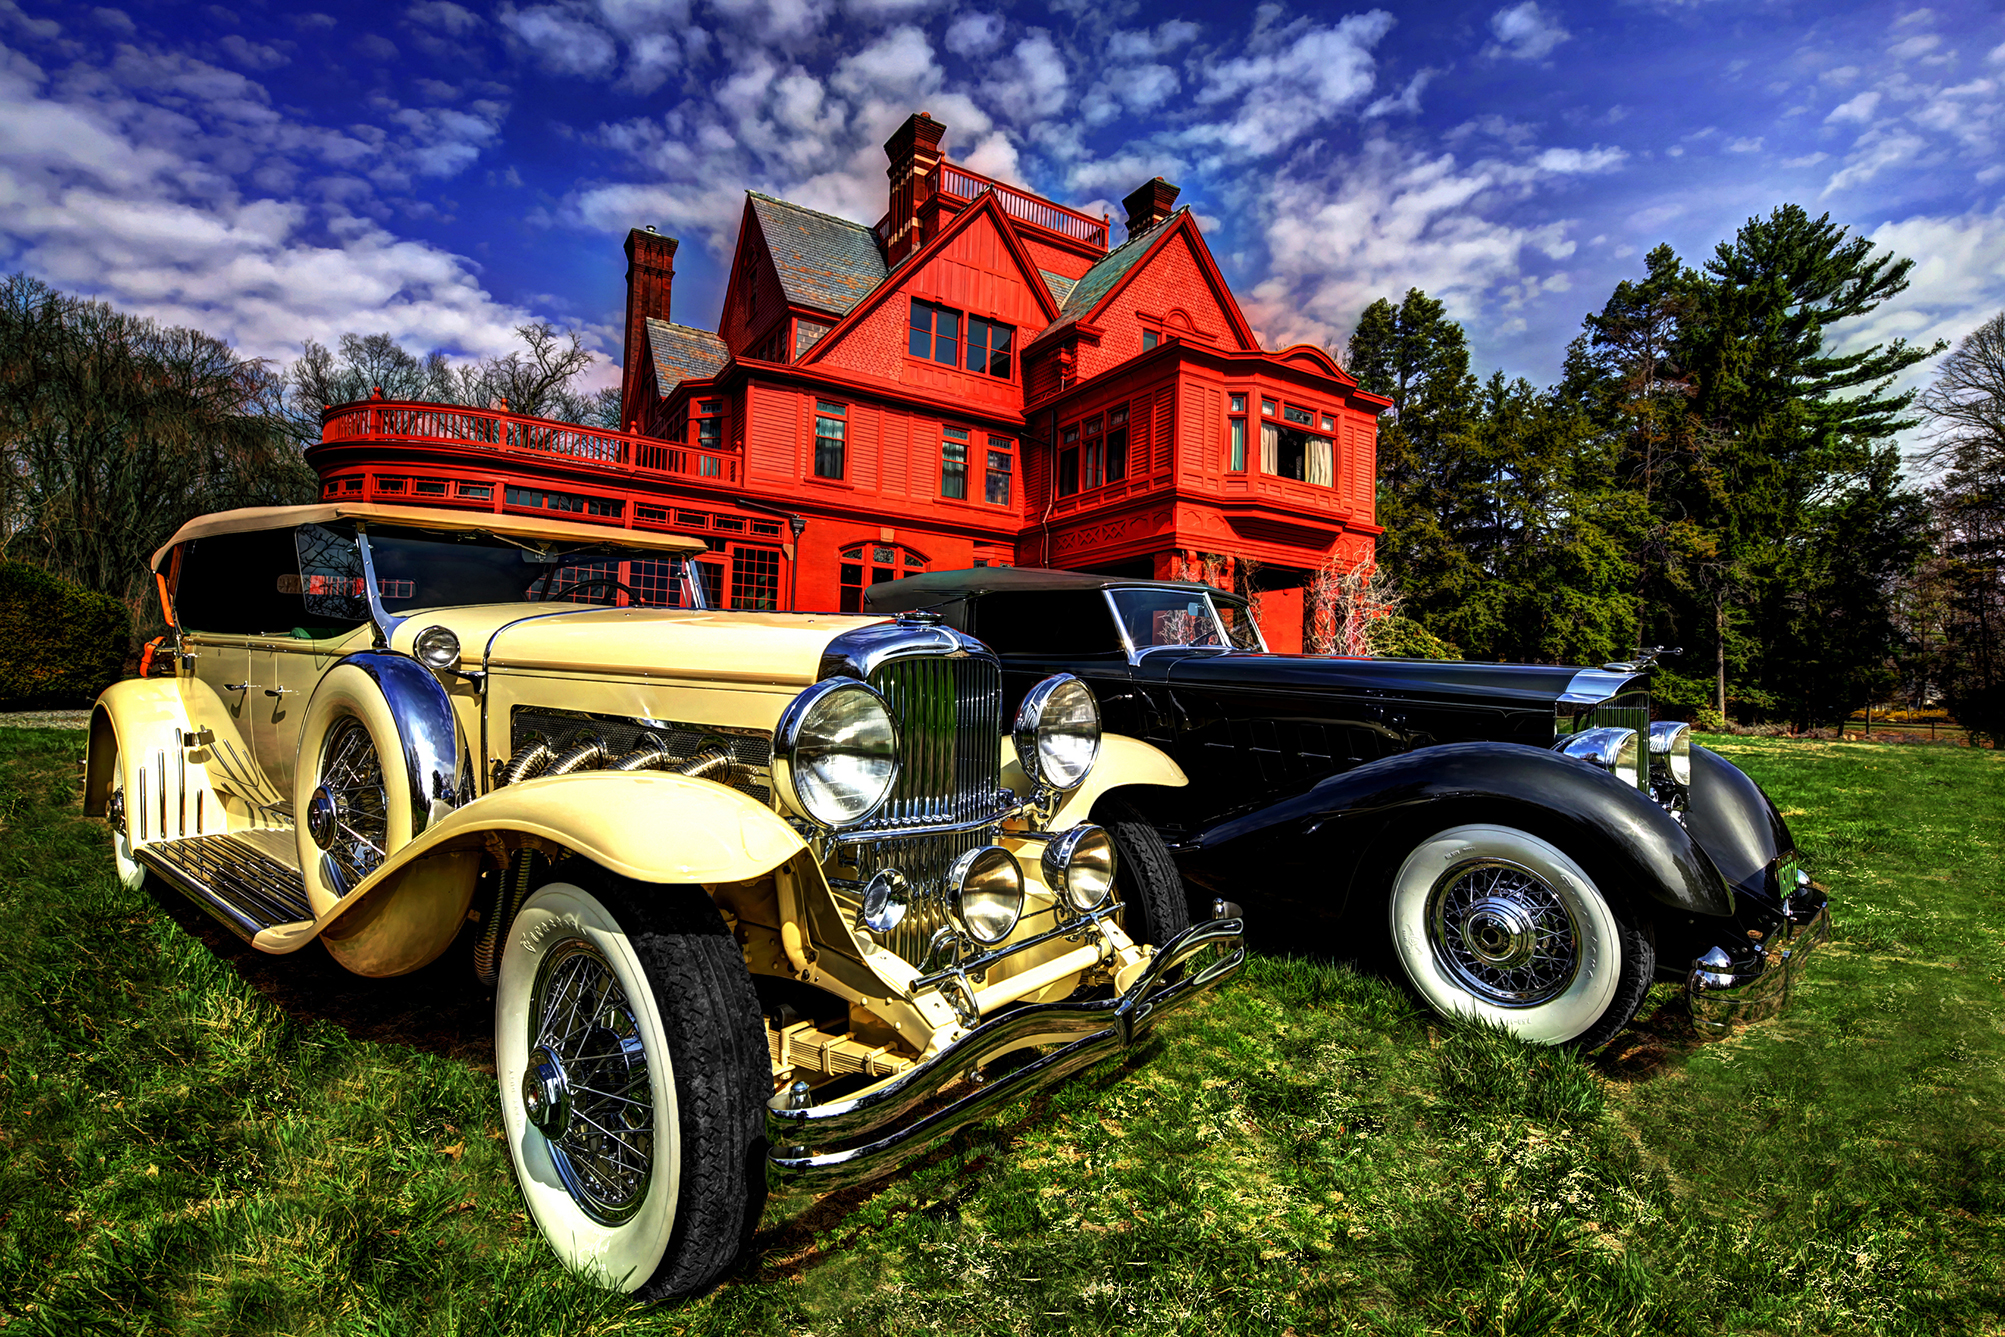 2015 top stories: No. 6 - Edison concours, new auctions join the ...